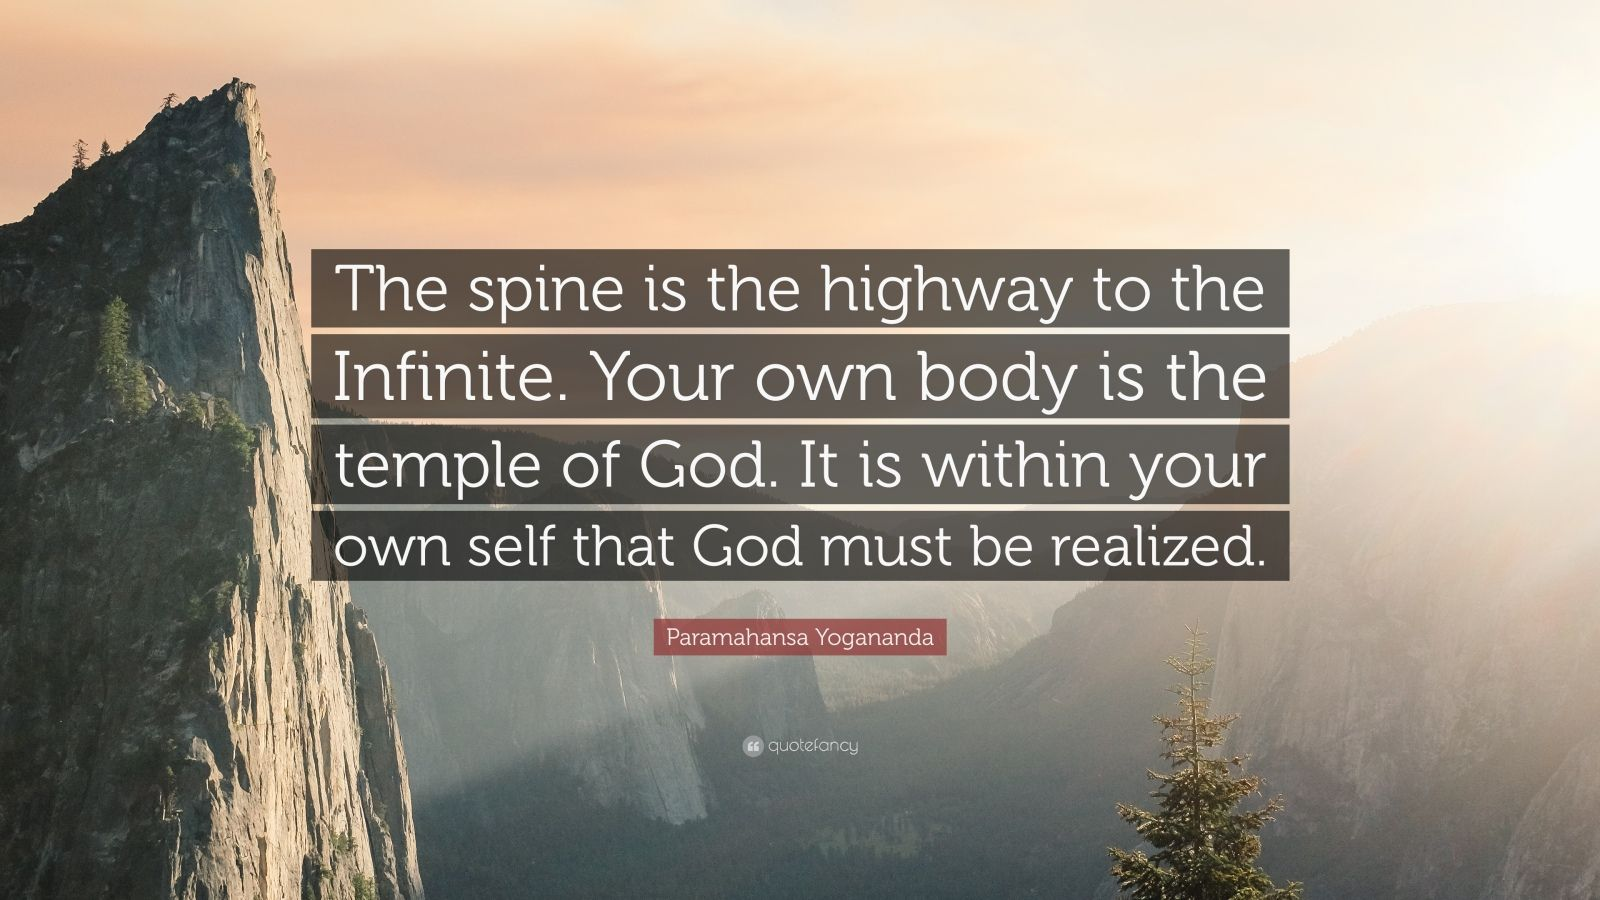 """Paramahansa Yogananda Quote: """"The spine is the highway to the Infinite. Your own body is the temple of God. It is within your own self that God must be realized."""""""